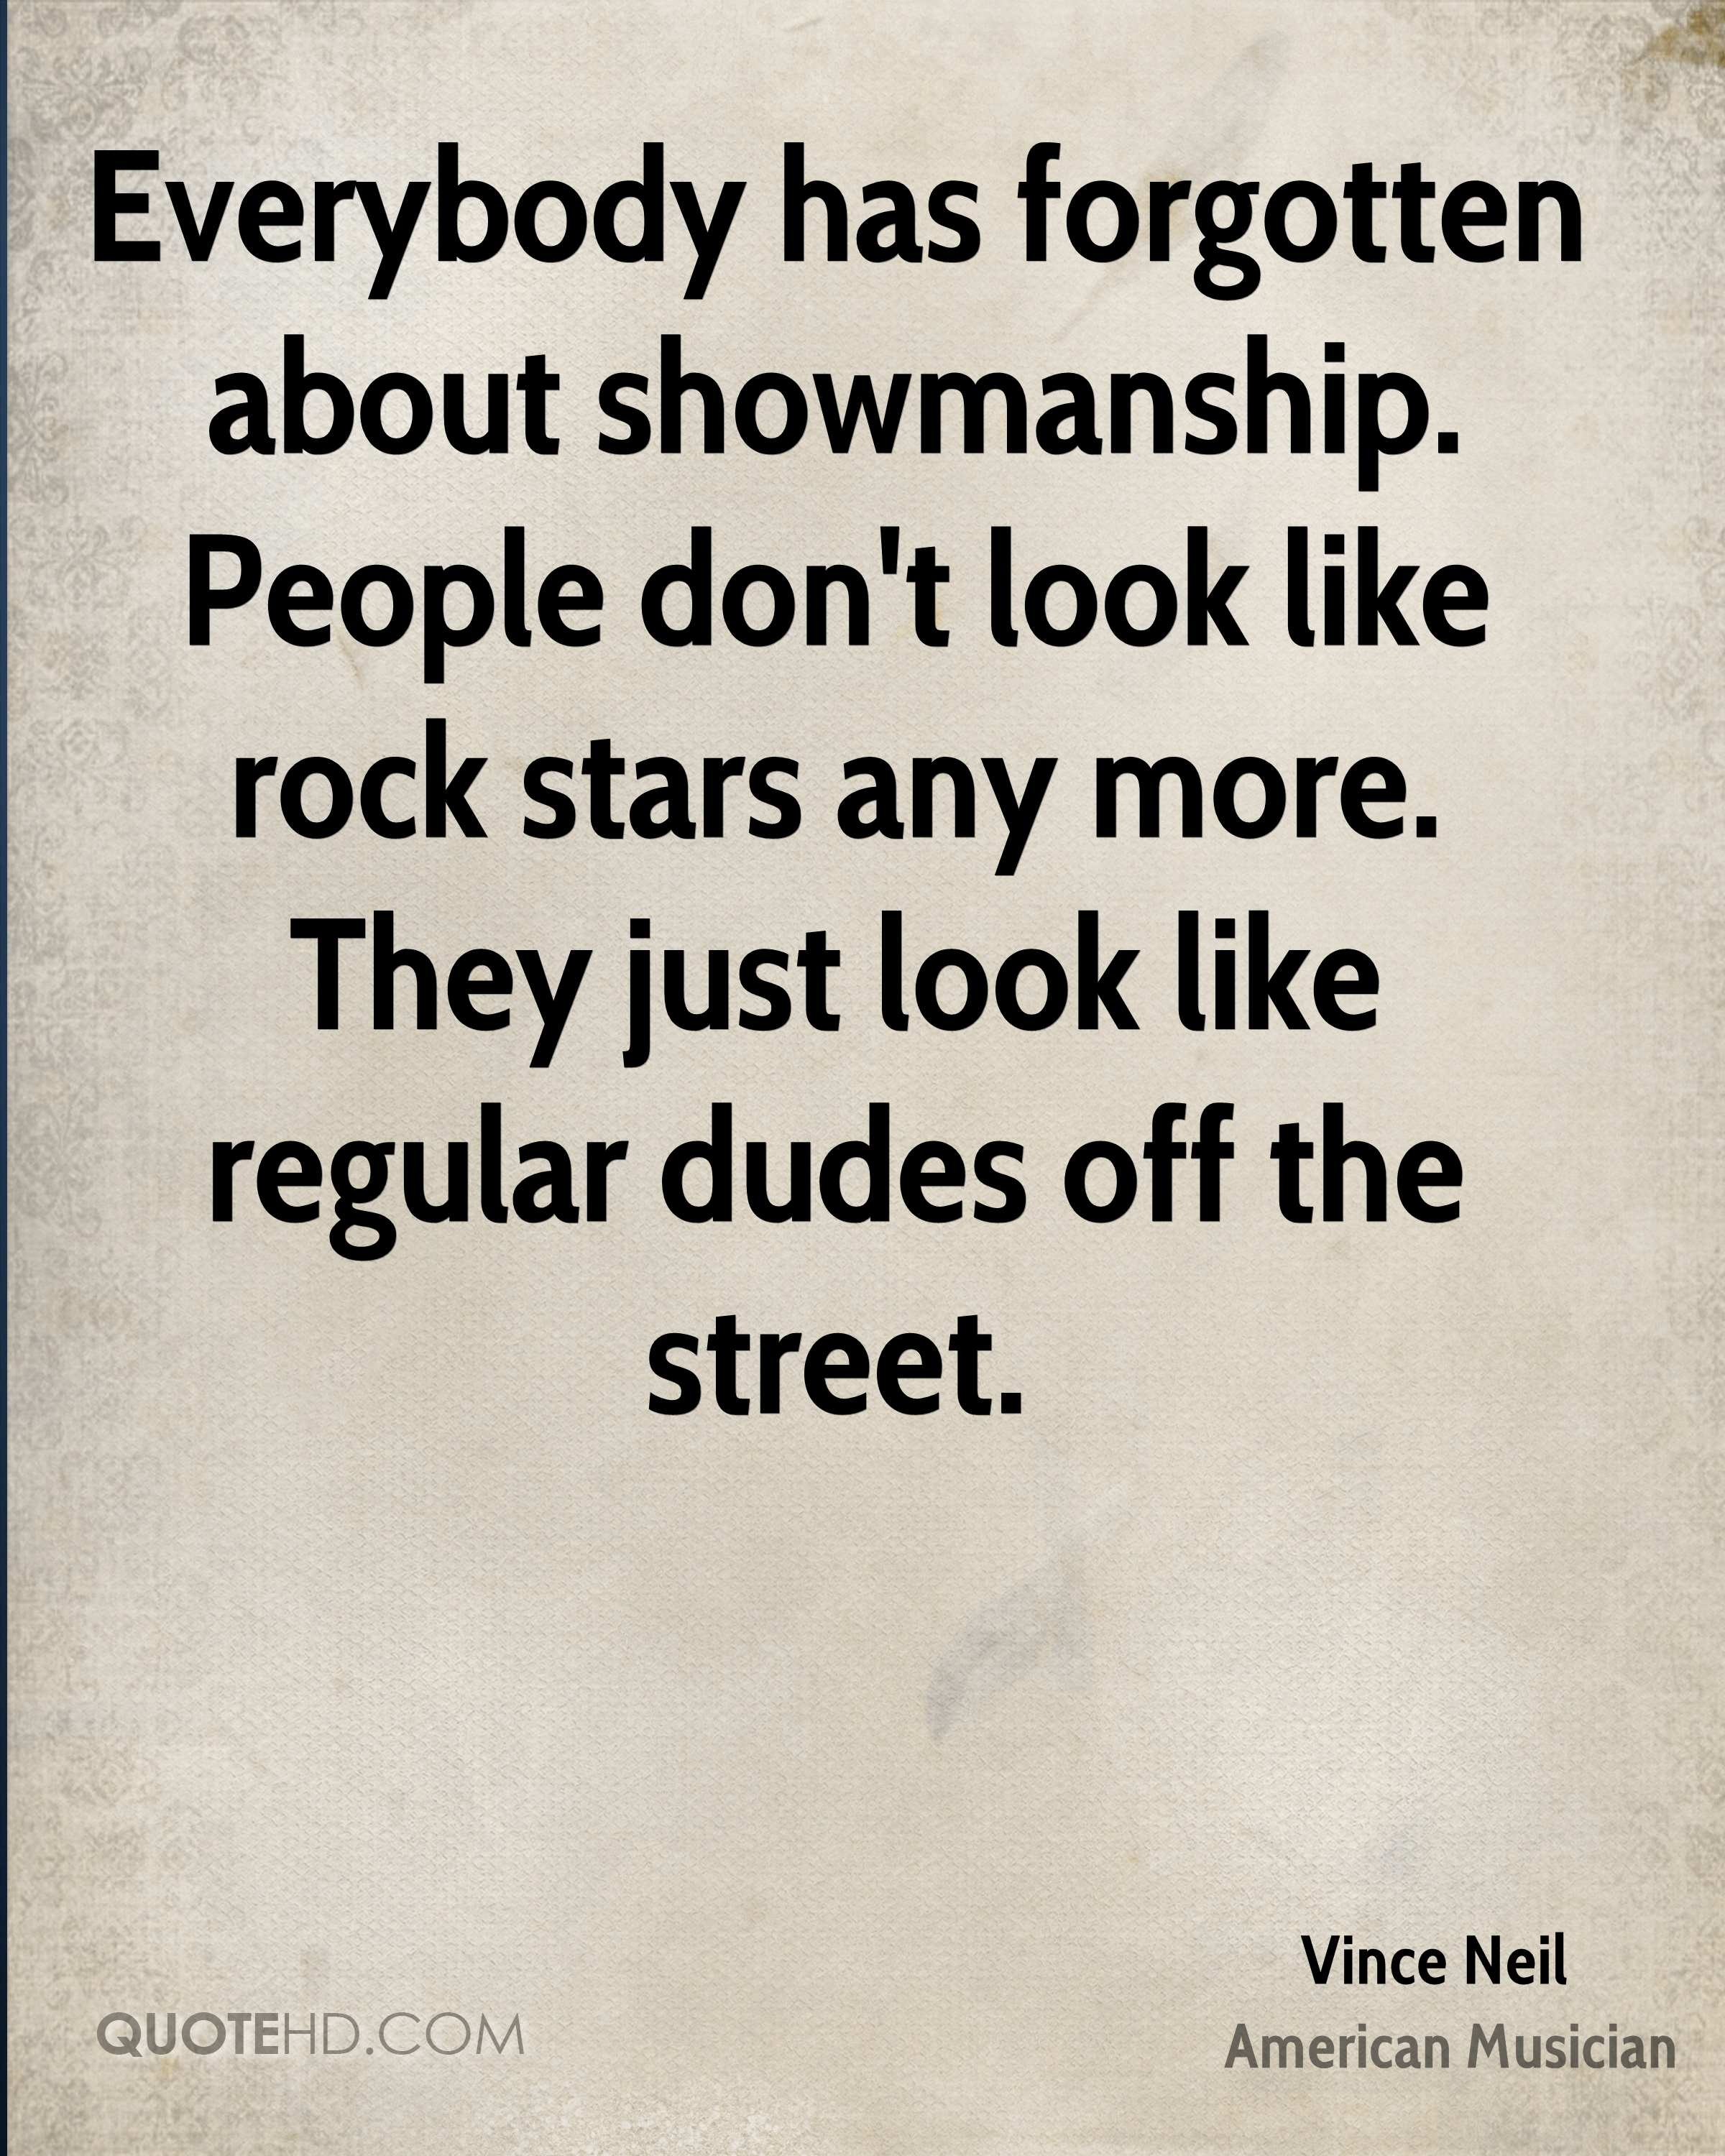 Everybody has forgotten about showmanship. People don't look like rock stars any more. They just look like regular dudes off the street.